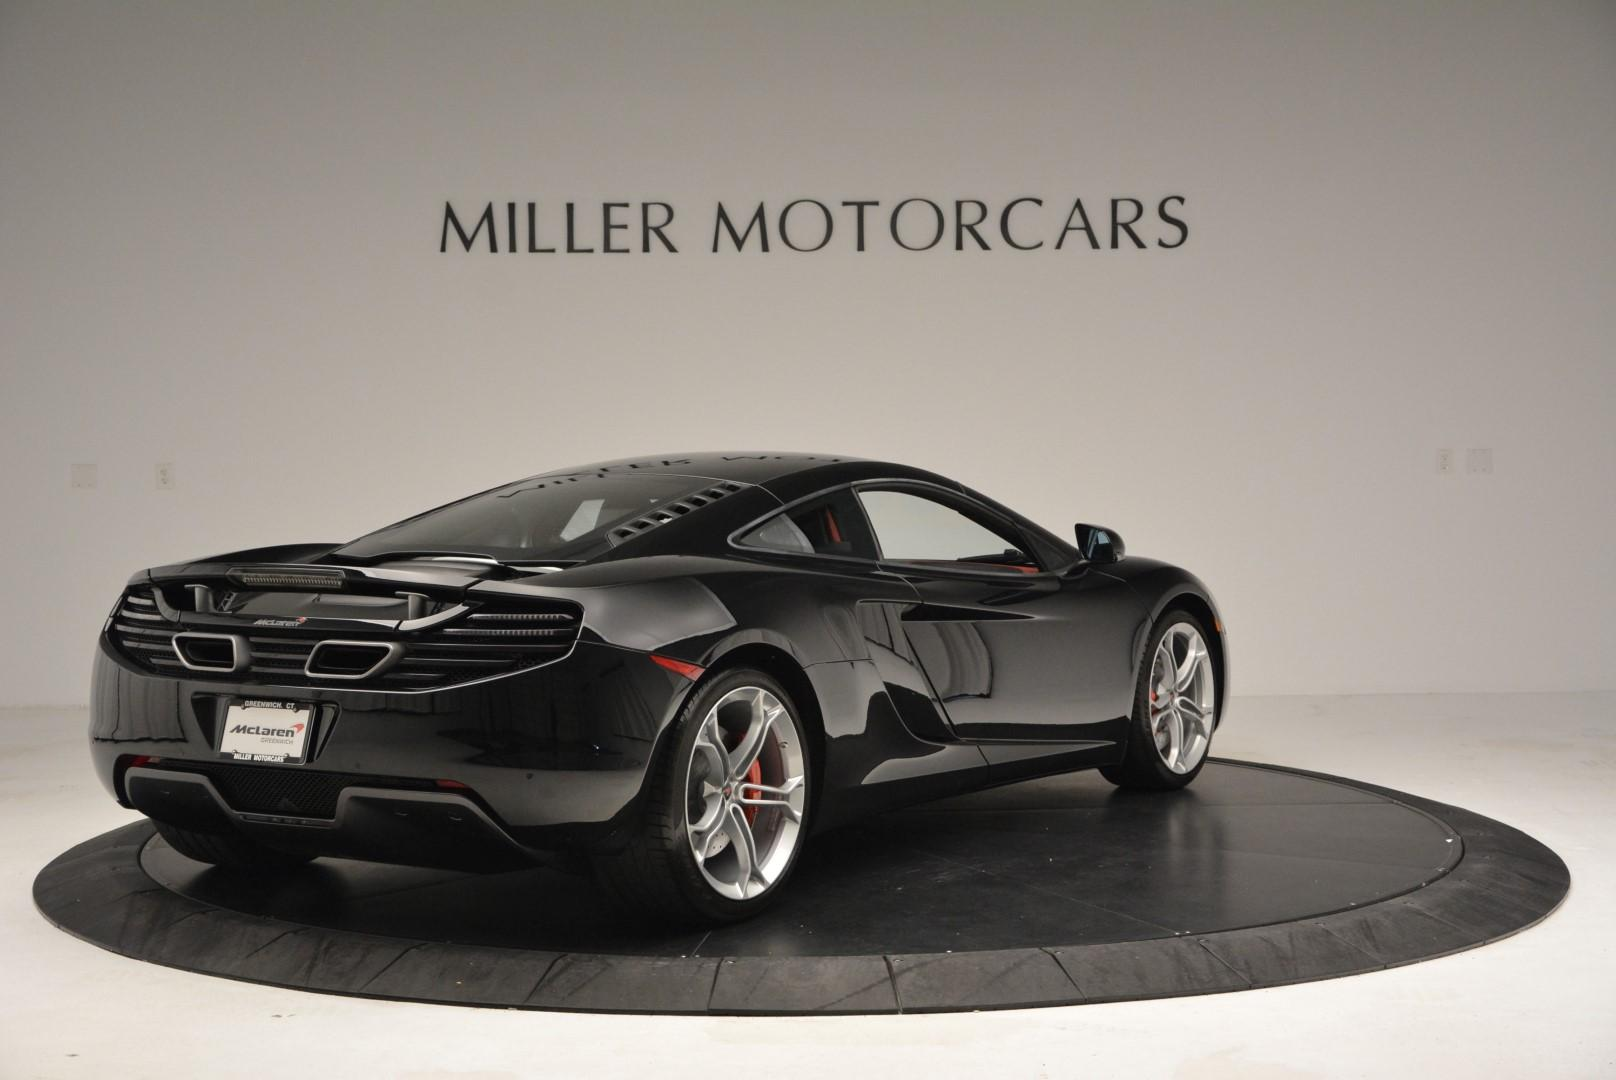 Used 2012 McLaren MP4-12c Coupe For Sale In Greenwich, CT. Alfa Romeo of Greenwich, 3155 70_p7